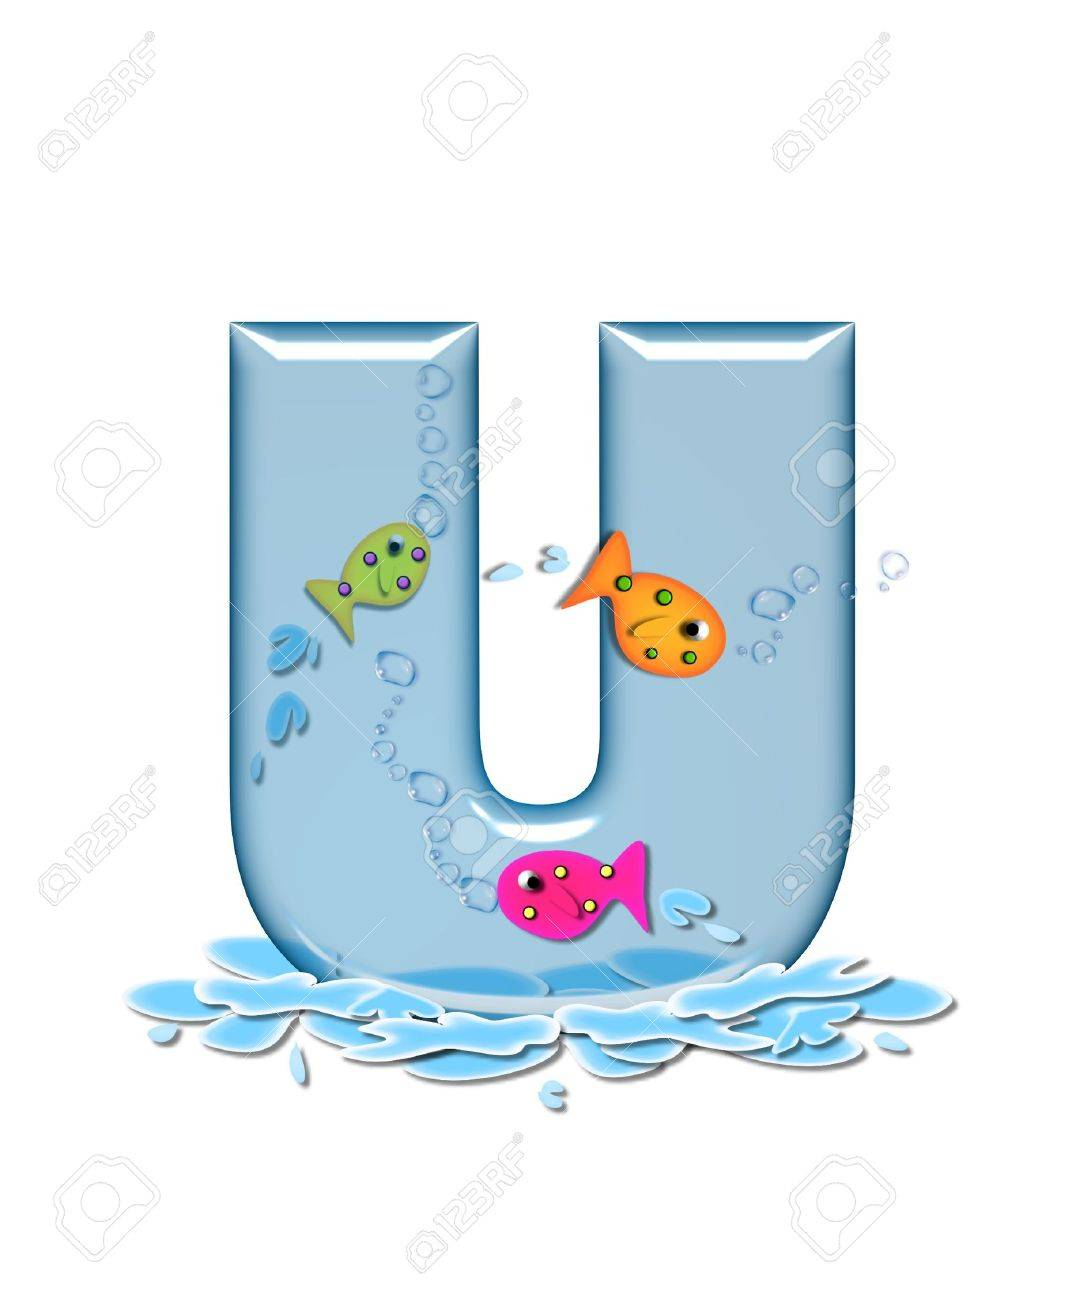 stock photo the letter u in the alphabet set fish flop is aqua in color and transparent you can see fish swimming behind letter and in front